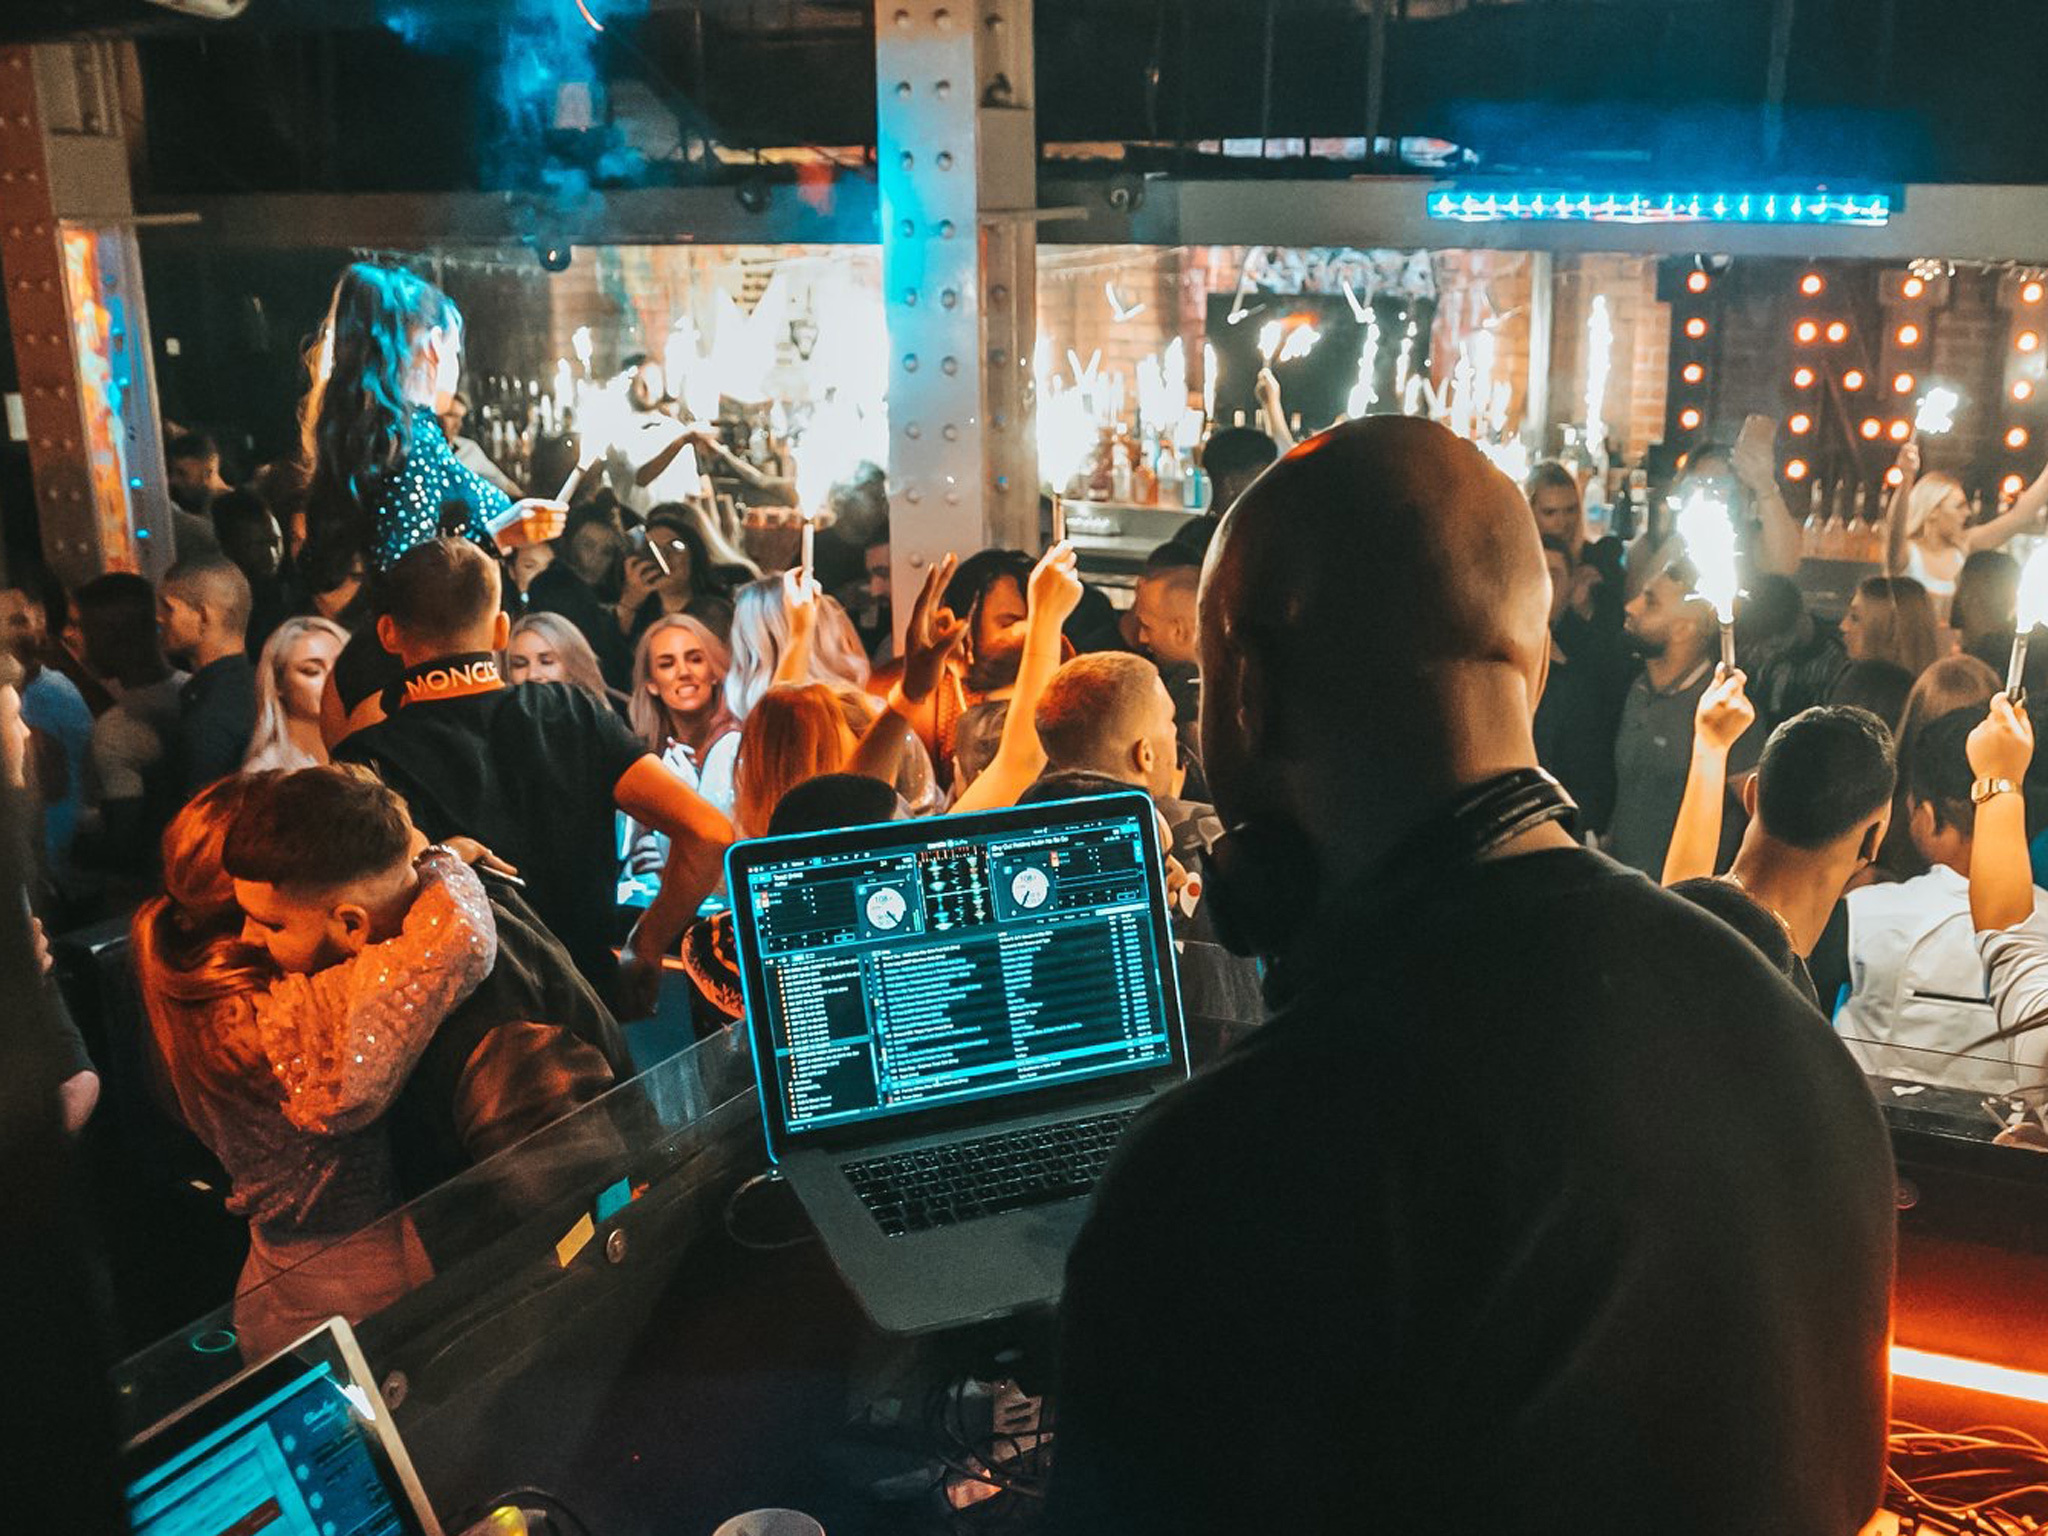 A DJ and crowd at Ink Bar club in Liverpool